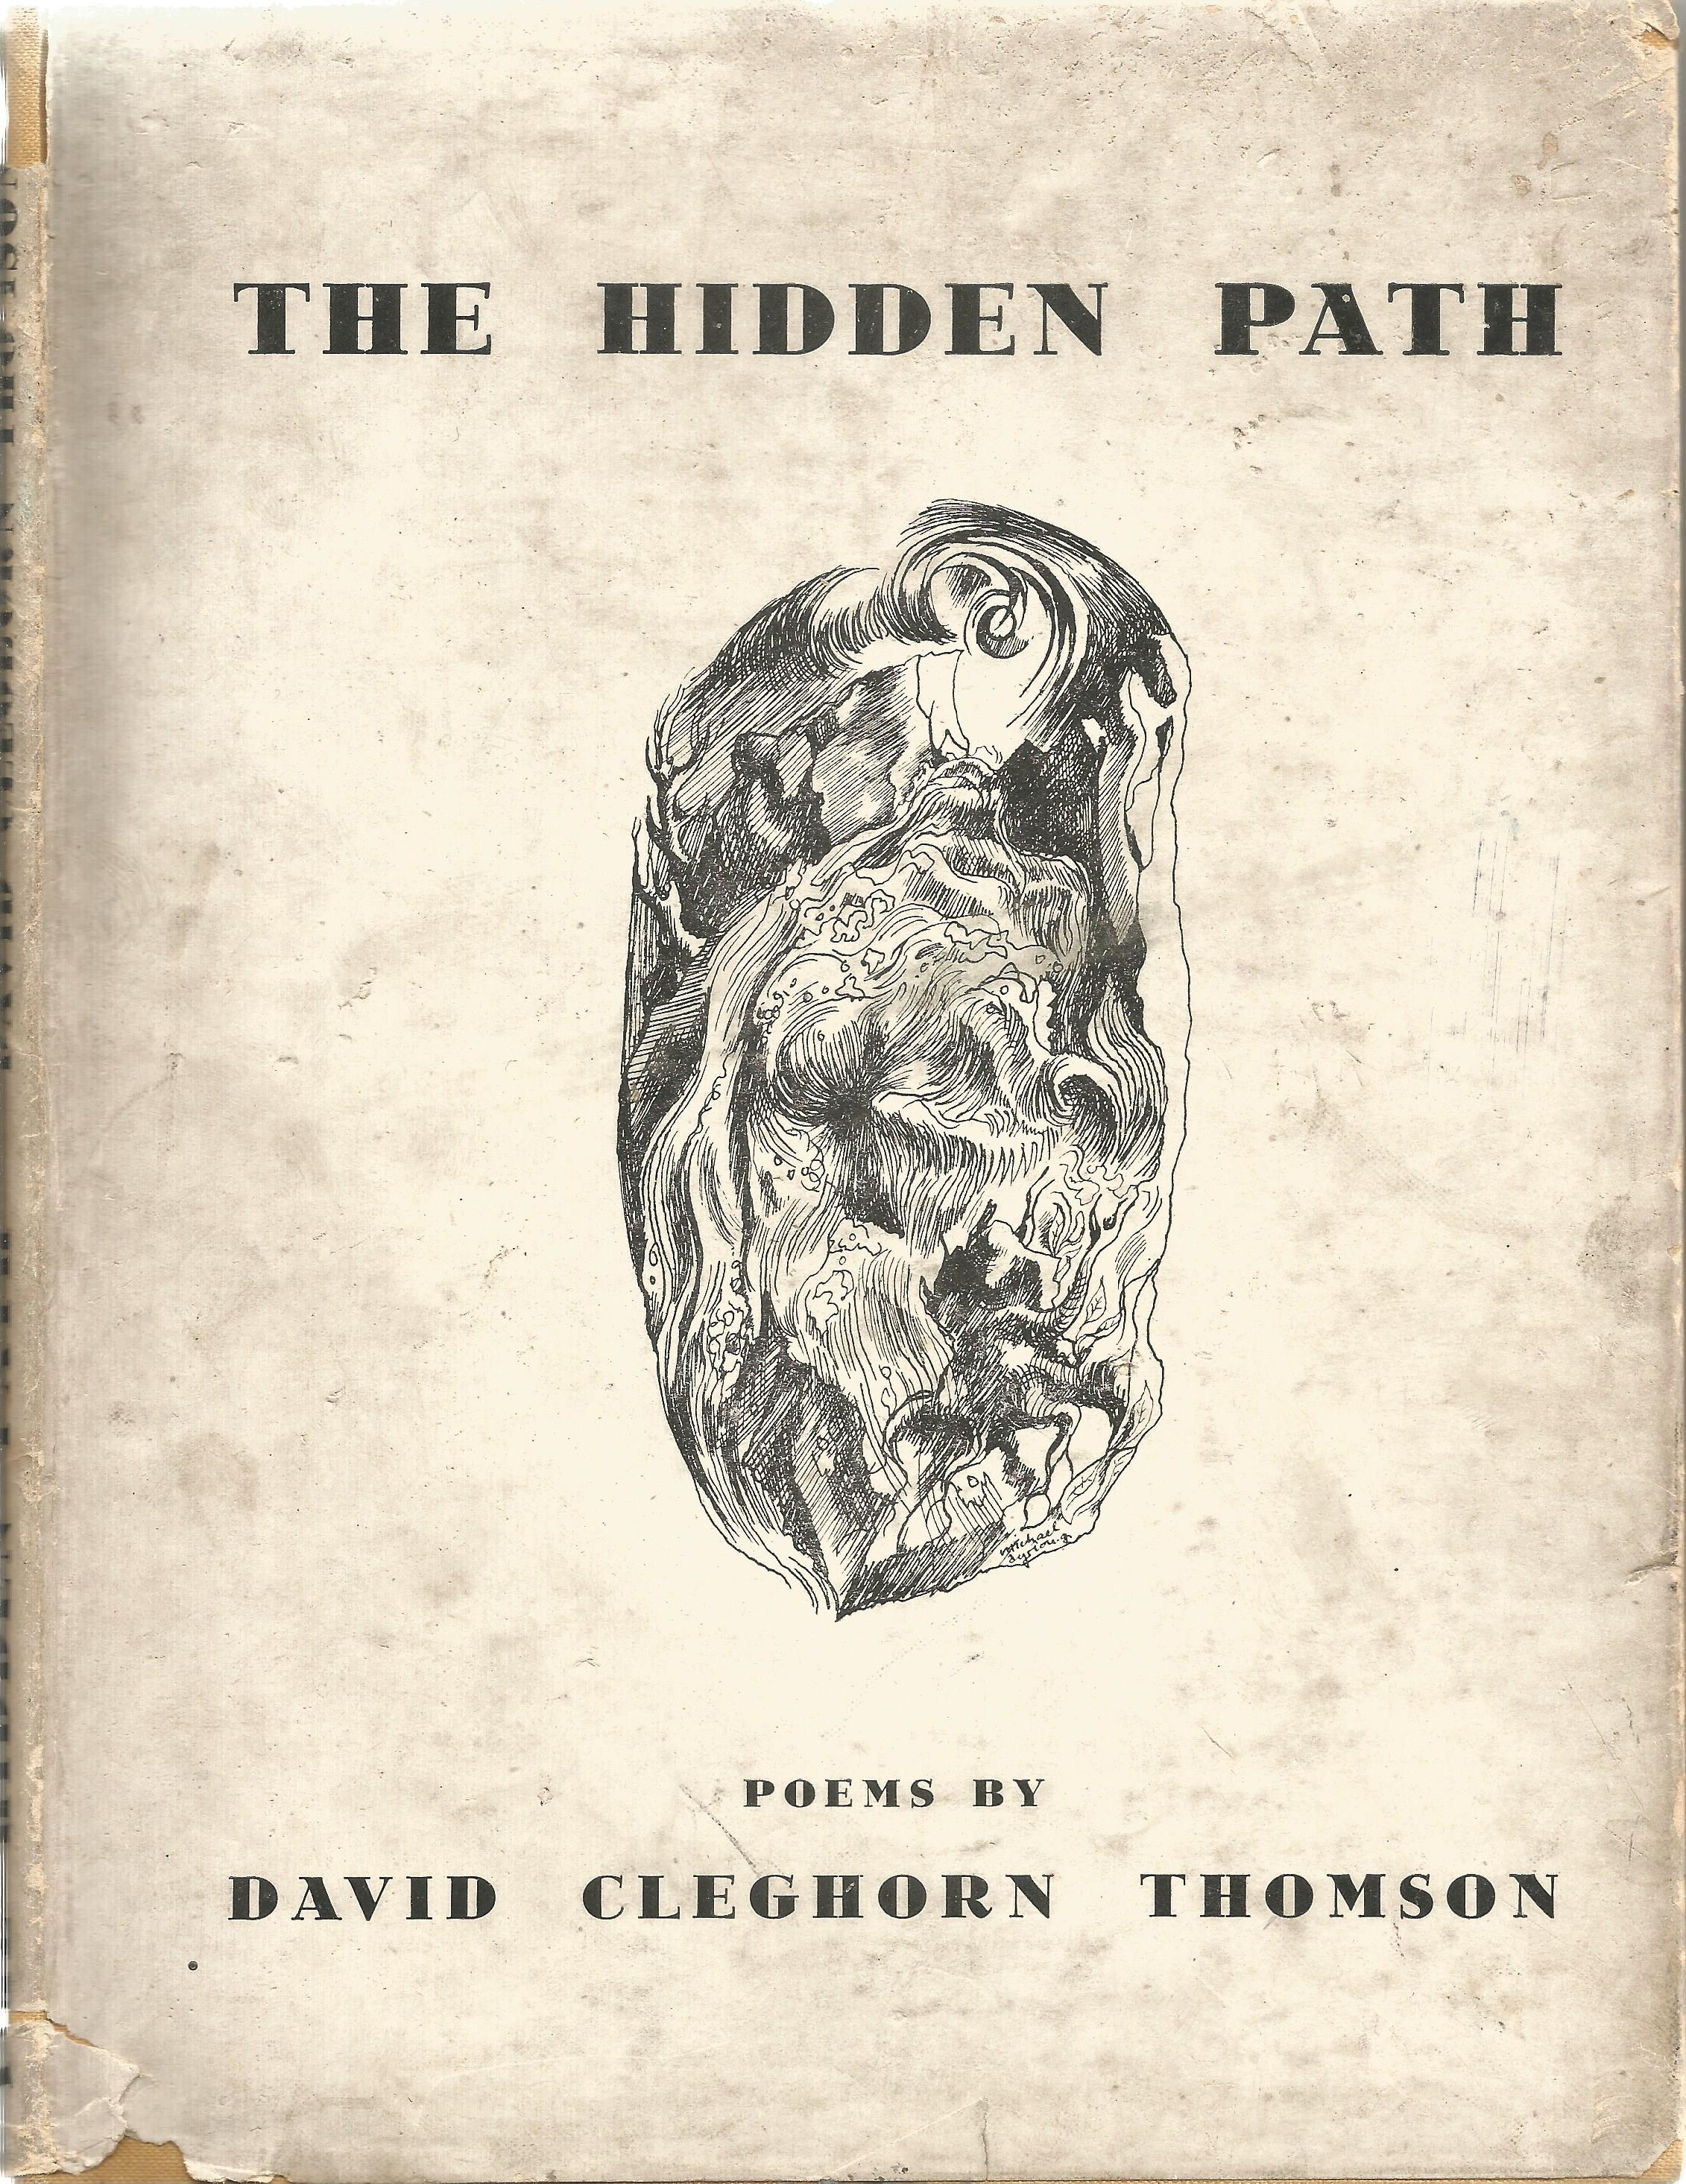 David Cleghorn Thomson Hardback Book The Hidden Path 1943 signed by the Author on the First Page and